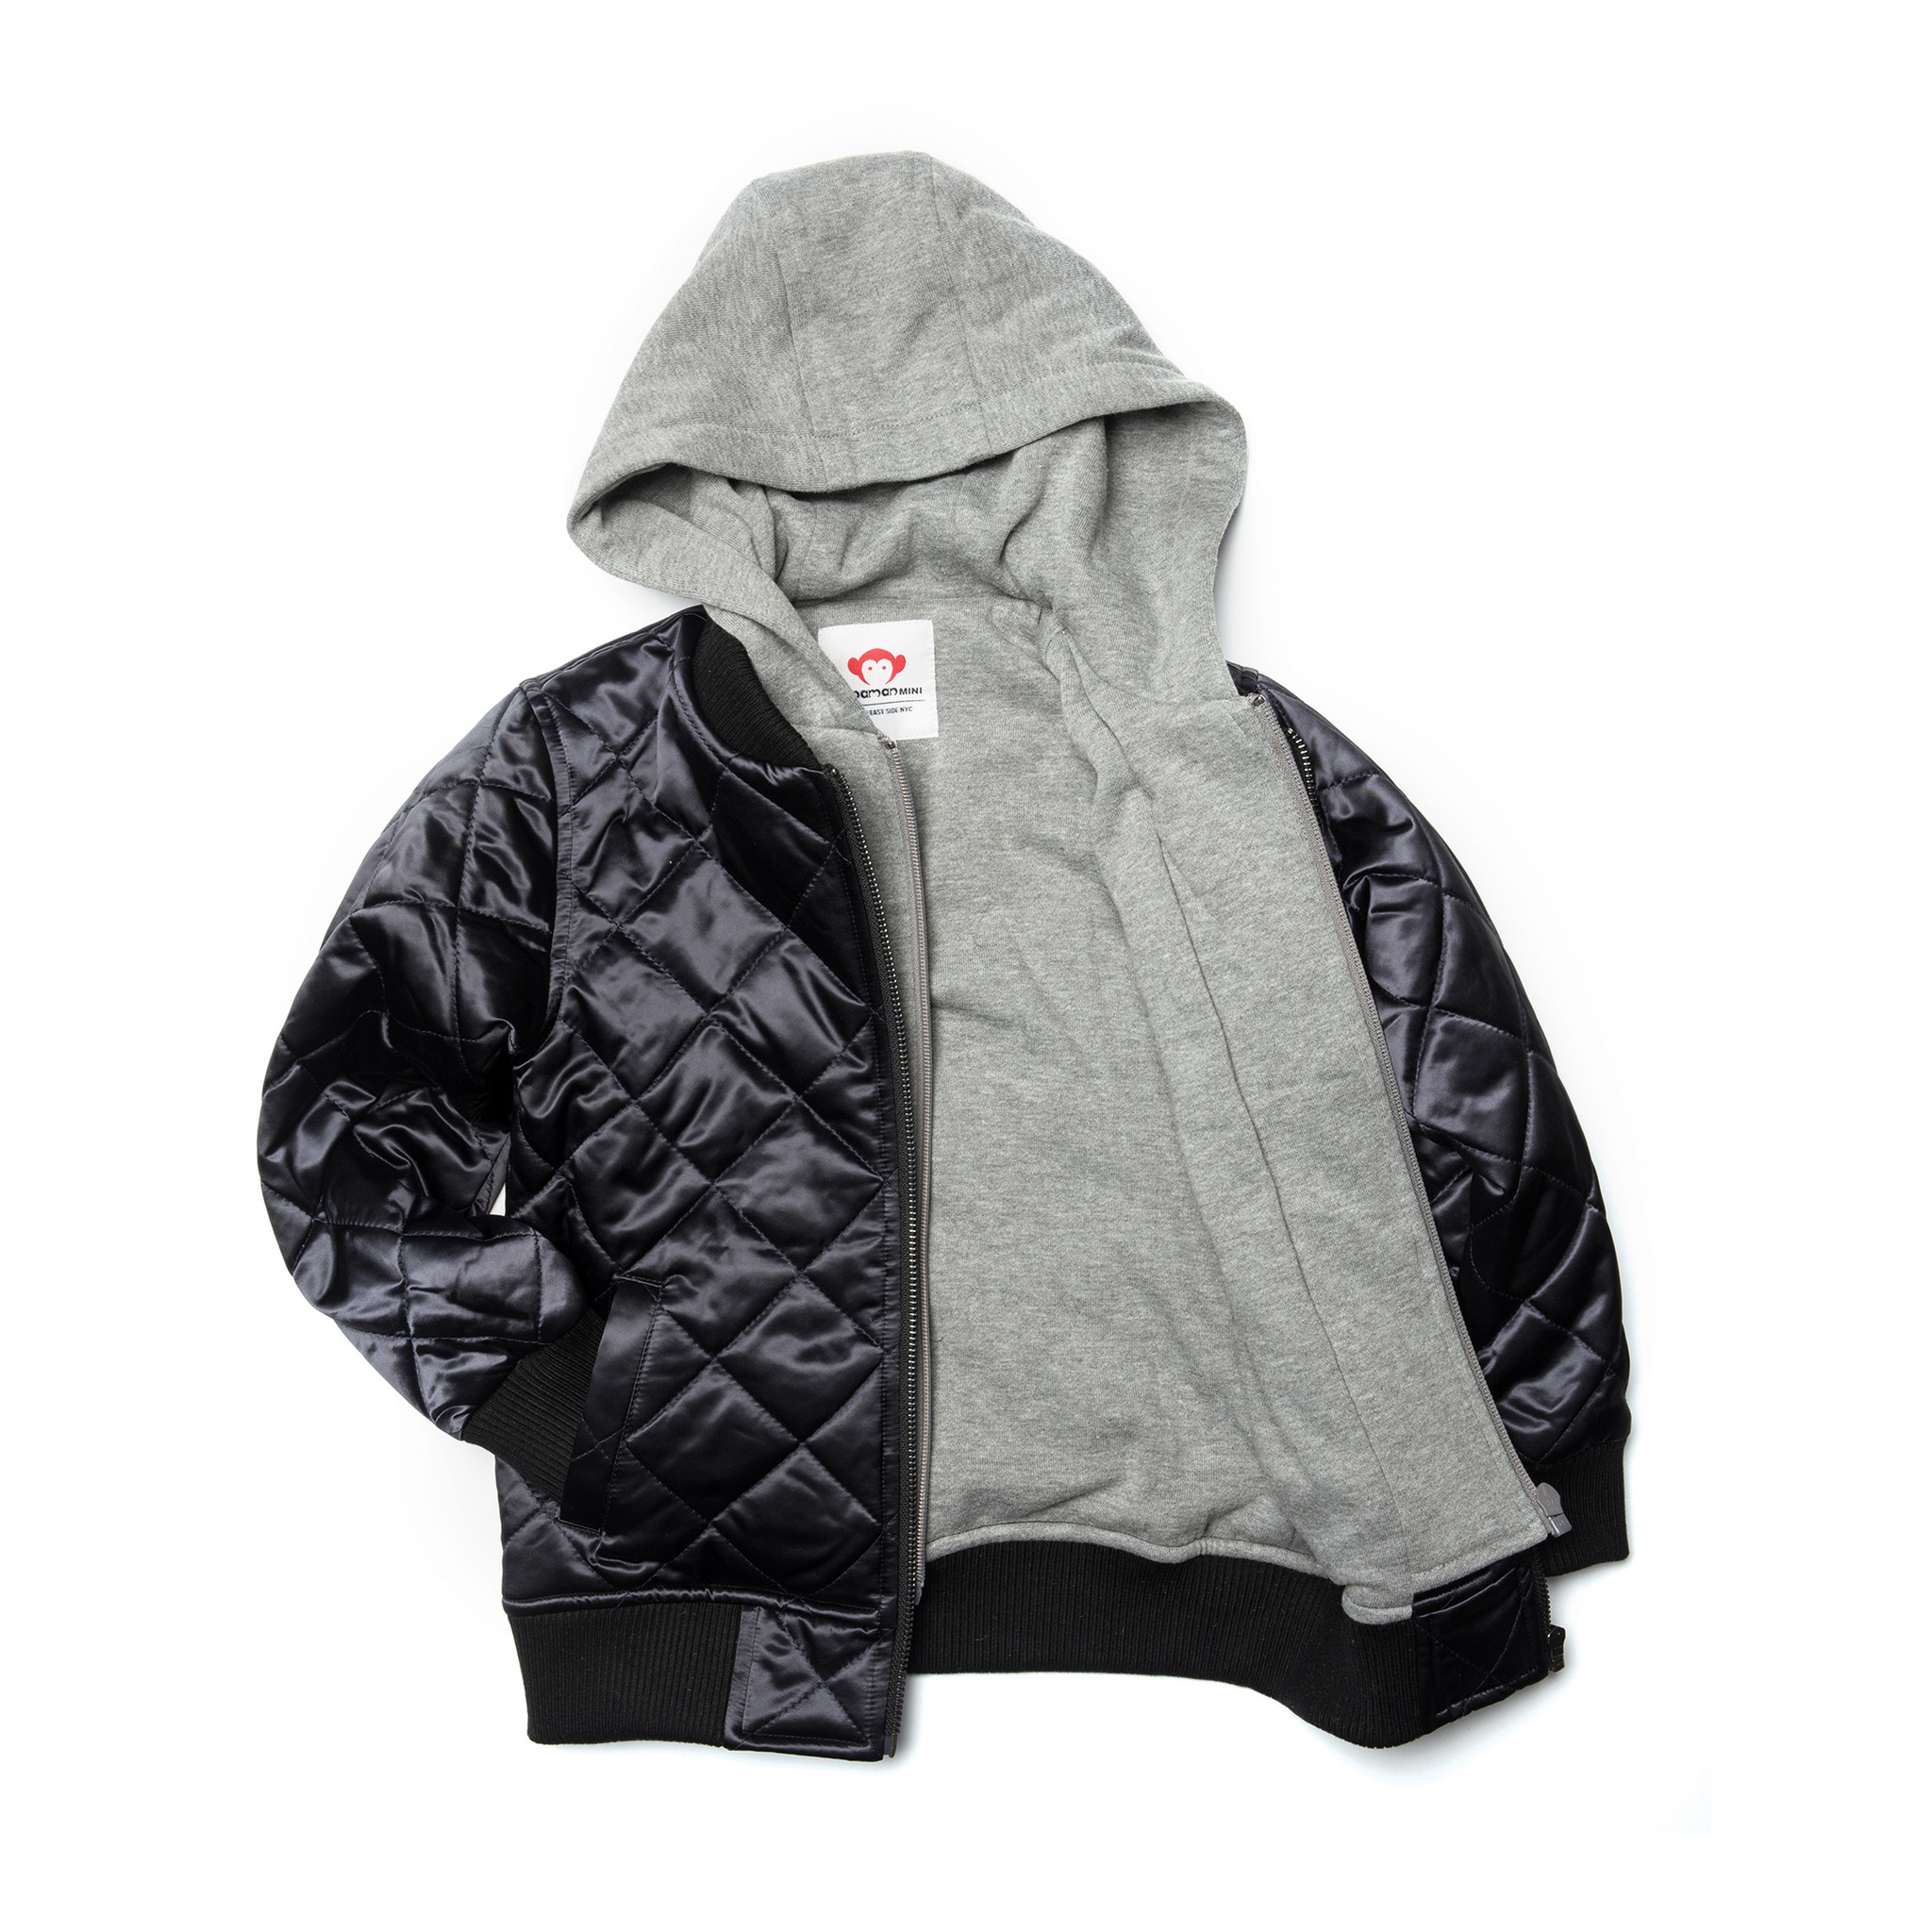 Appaman BX Bomber Jacket